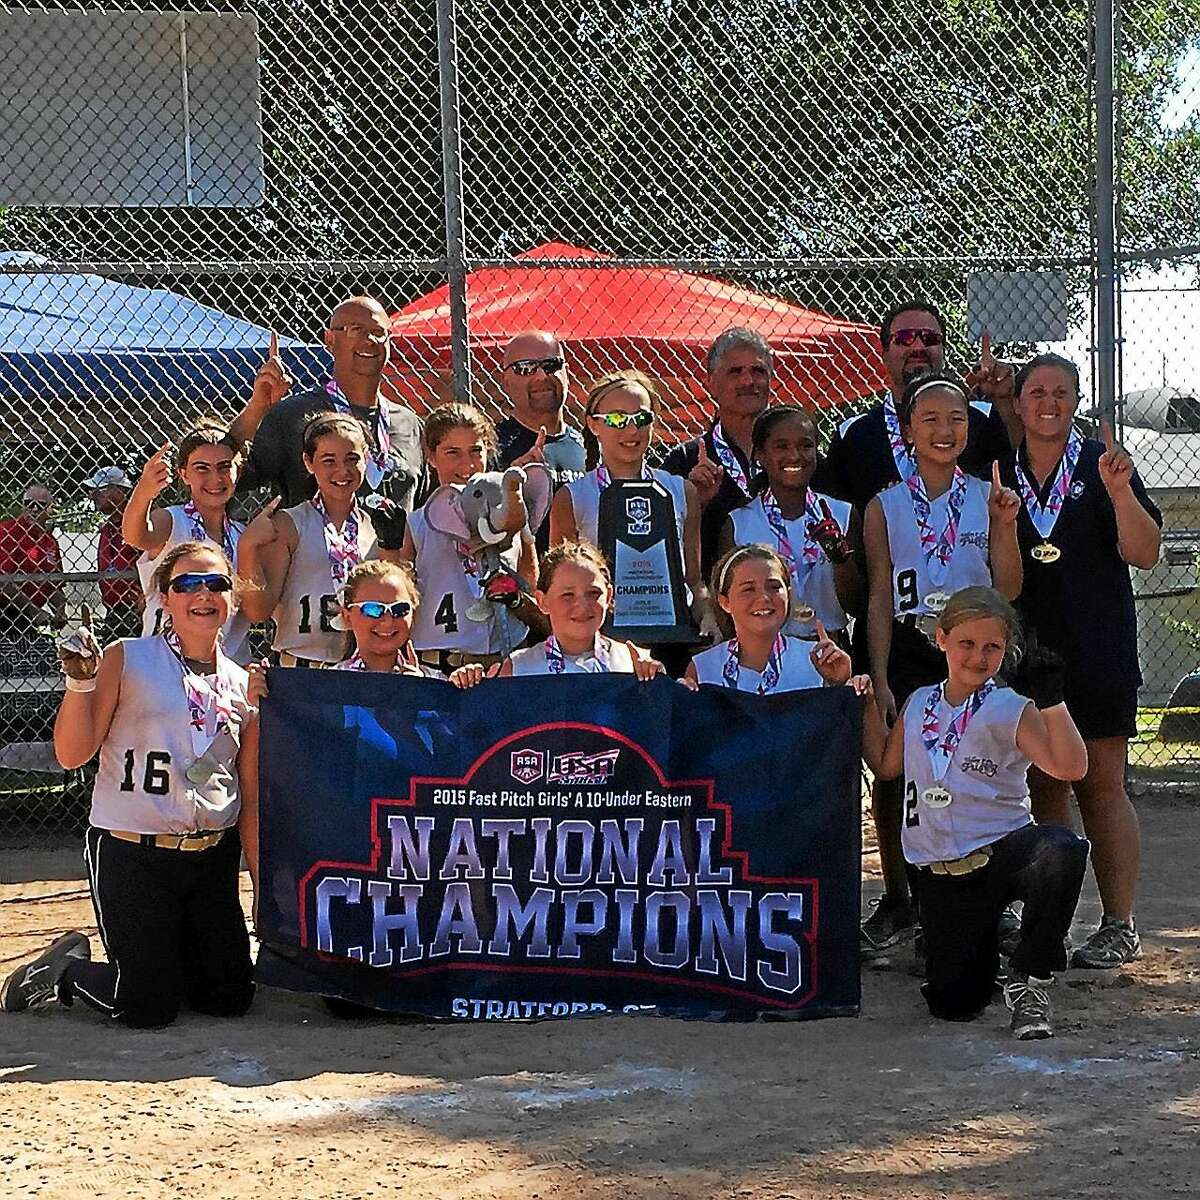 The Valley Fusion girls softball team recently clinched the title as Eastern National Champions.